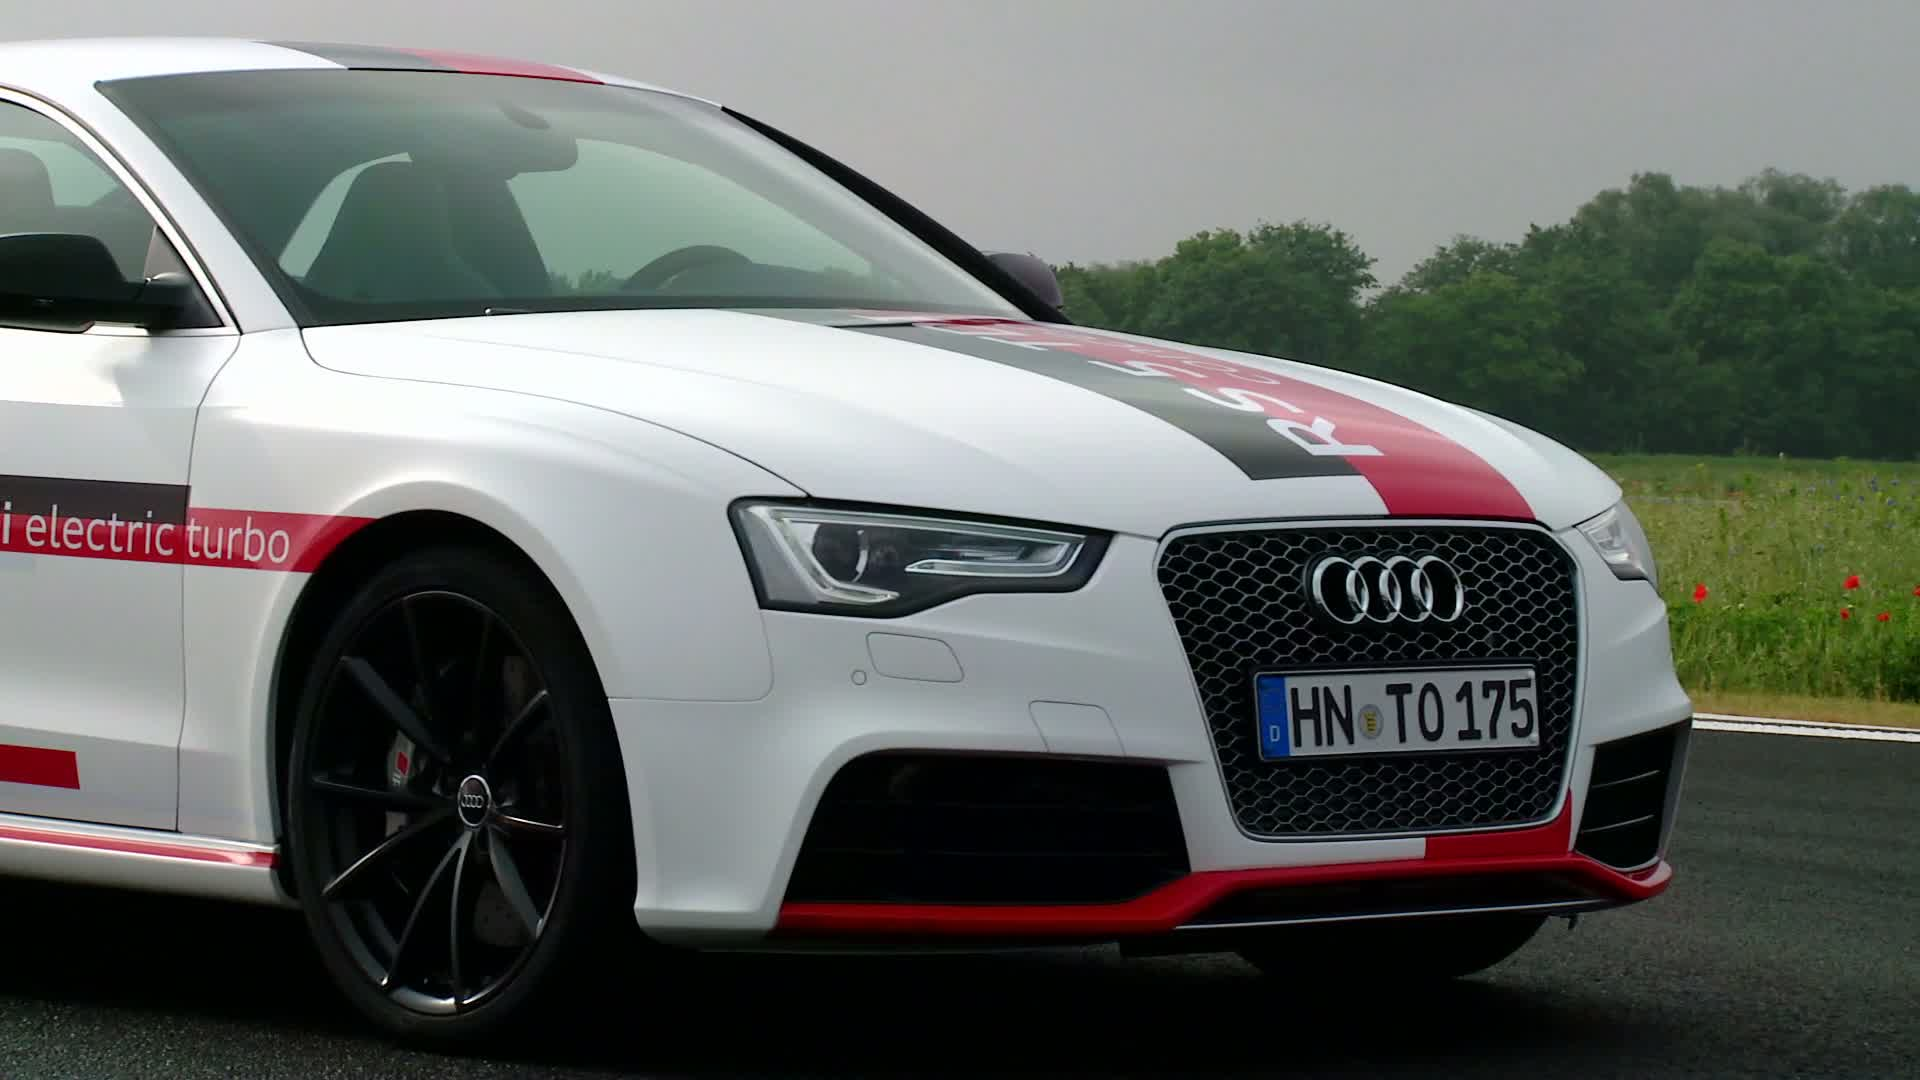 The Audi RS 5 TDI Concept - Footage